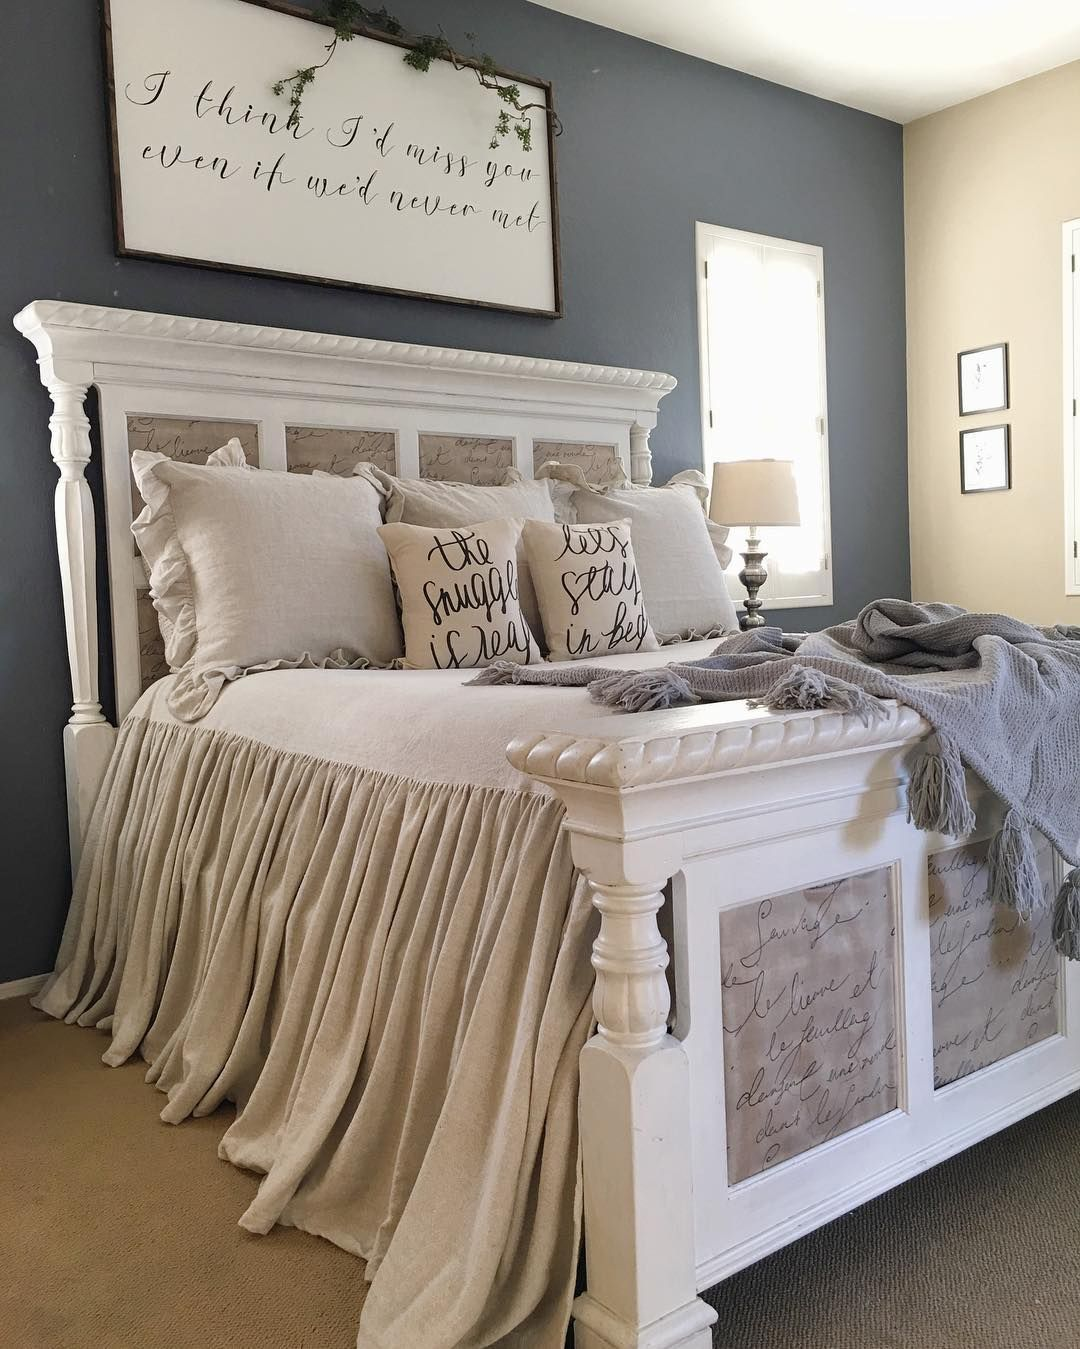 Master bedroom accent wall  Pin by Cassie Posey on Home Decor that I love  Pinterest  Bedrooms